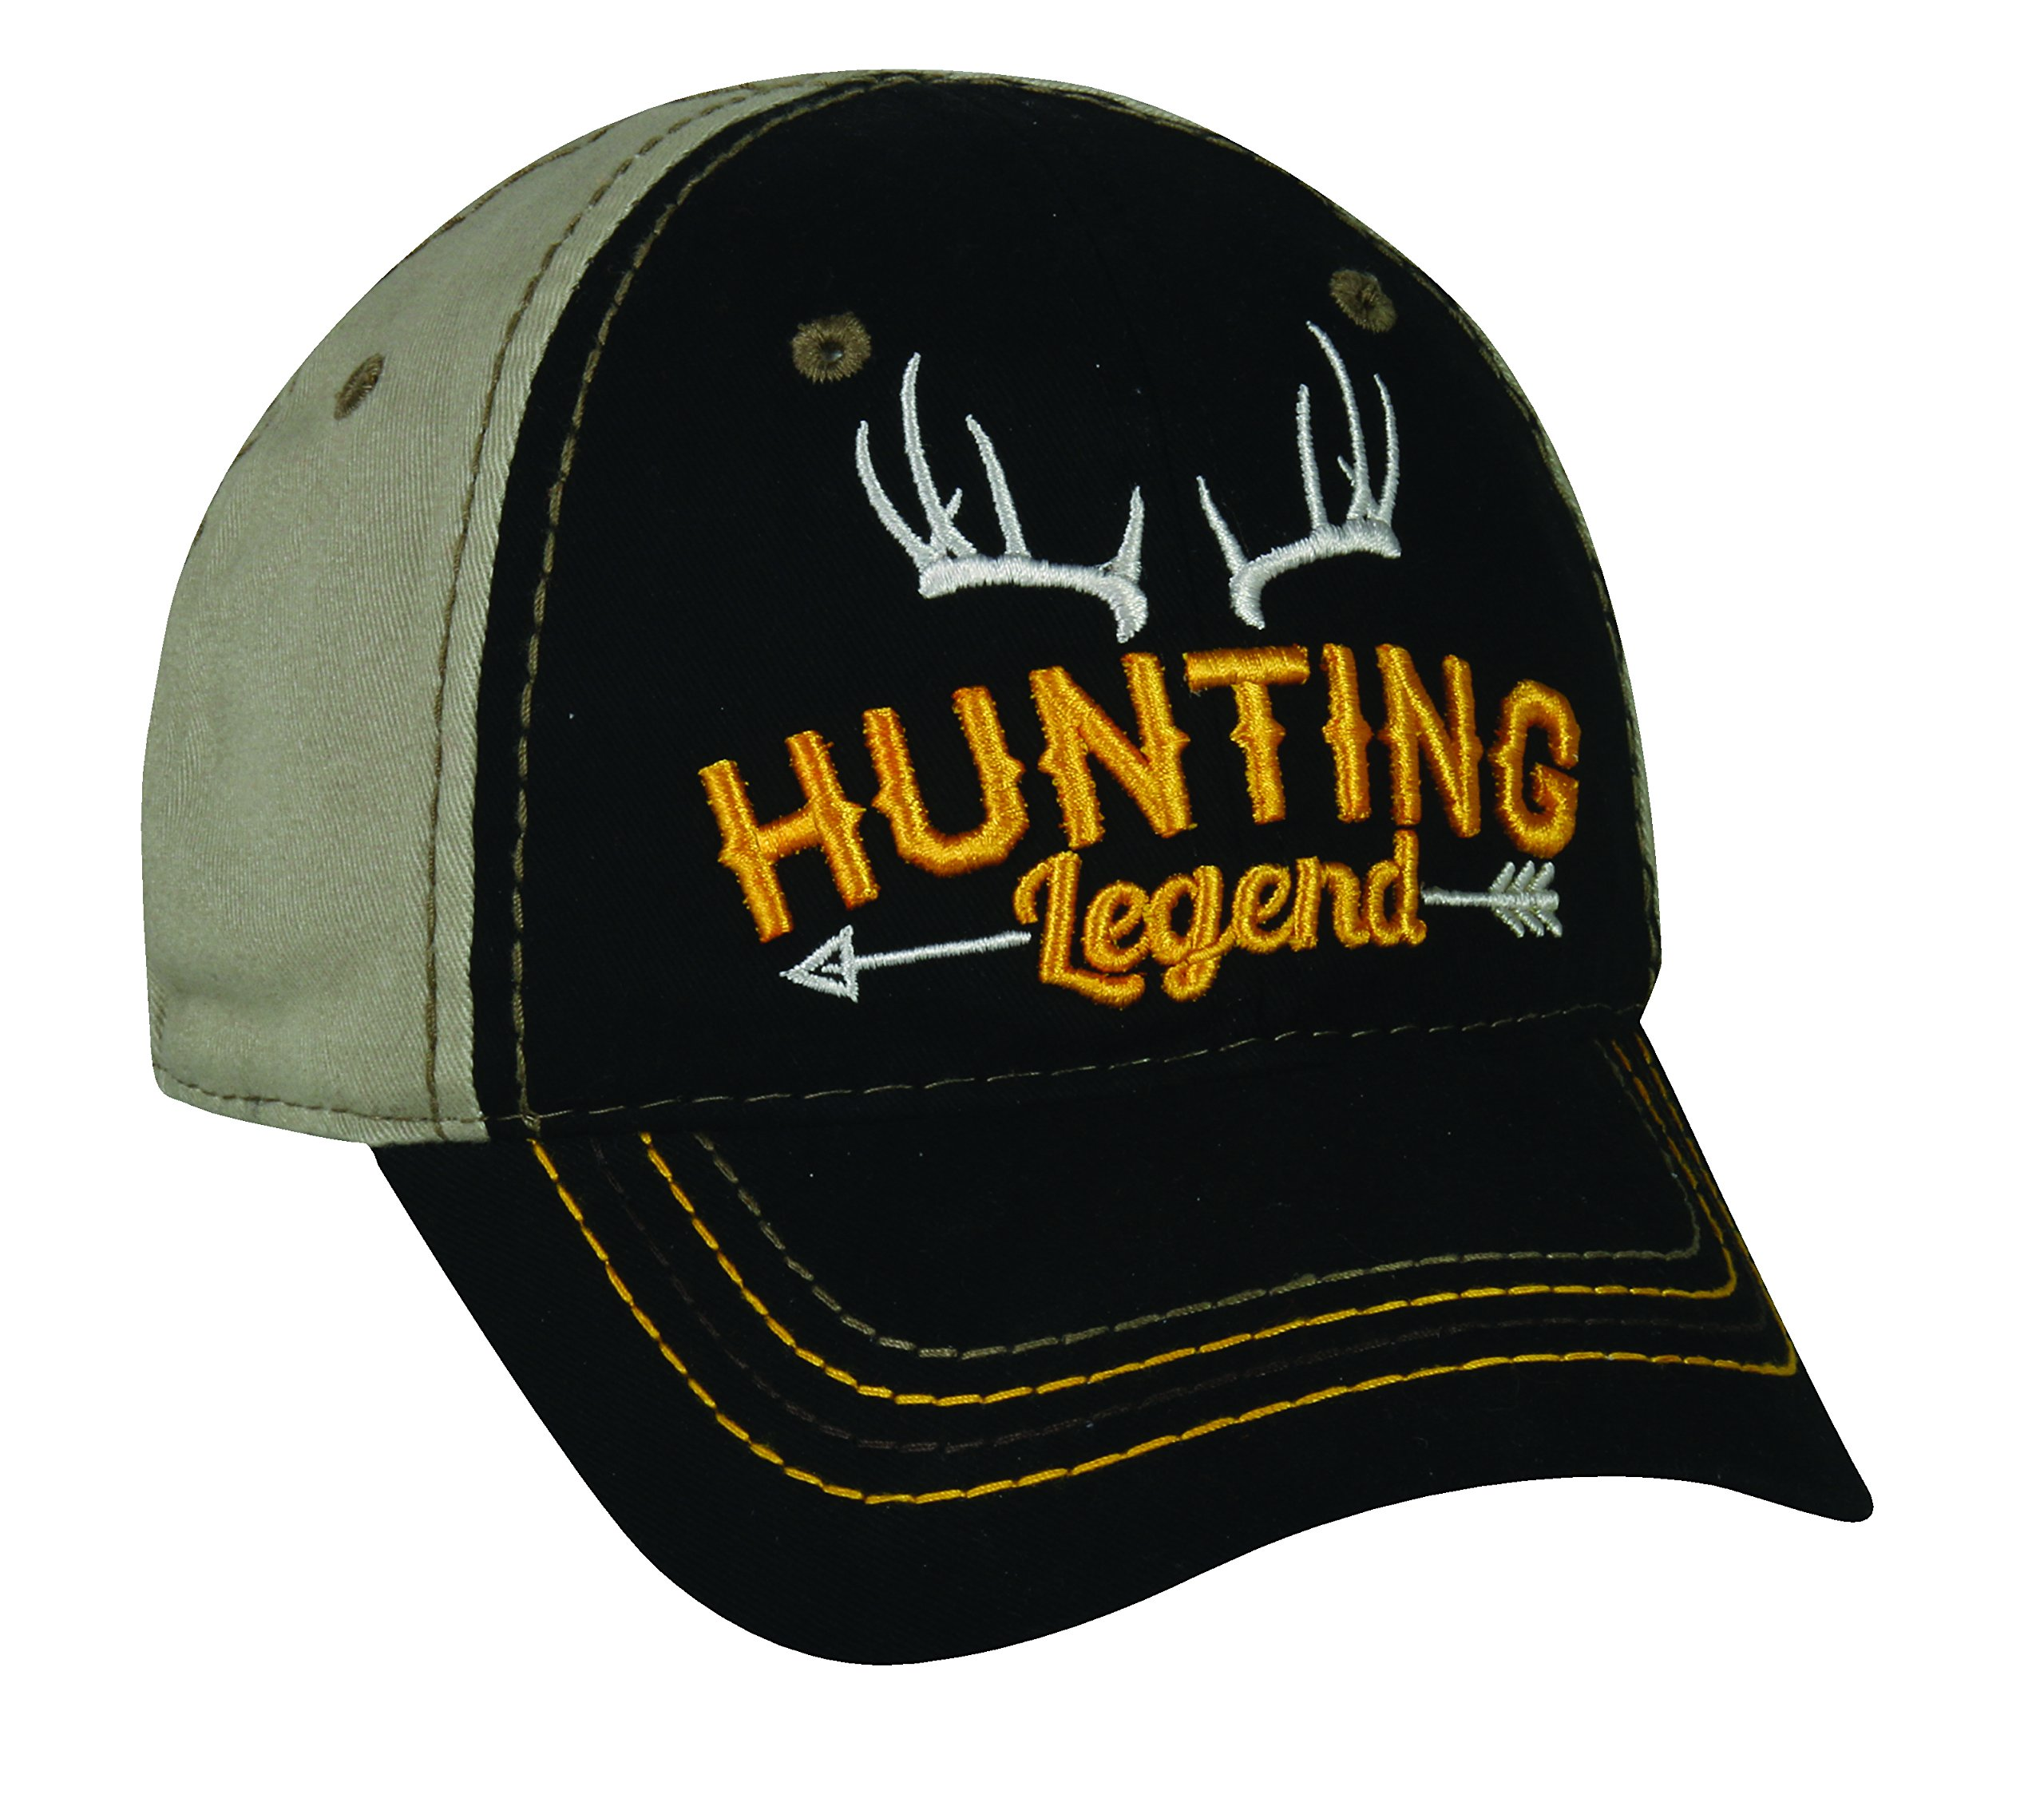 Outdoor Cap Adjustable Closure Toddler Hunting Legend Cap, Black/Khaki